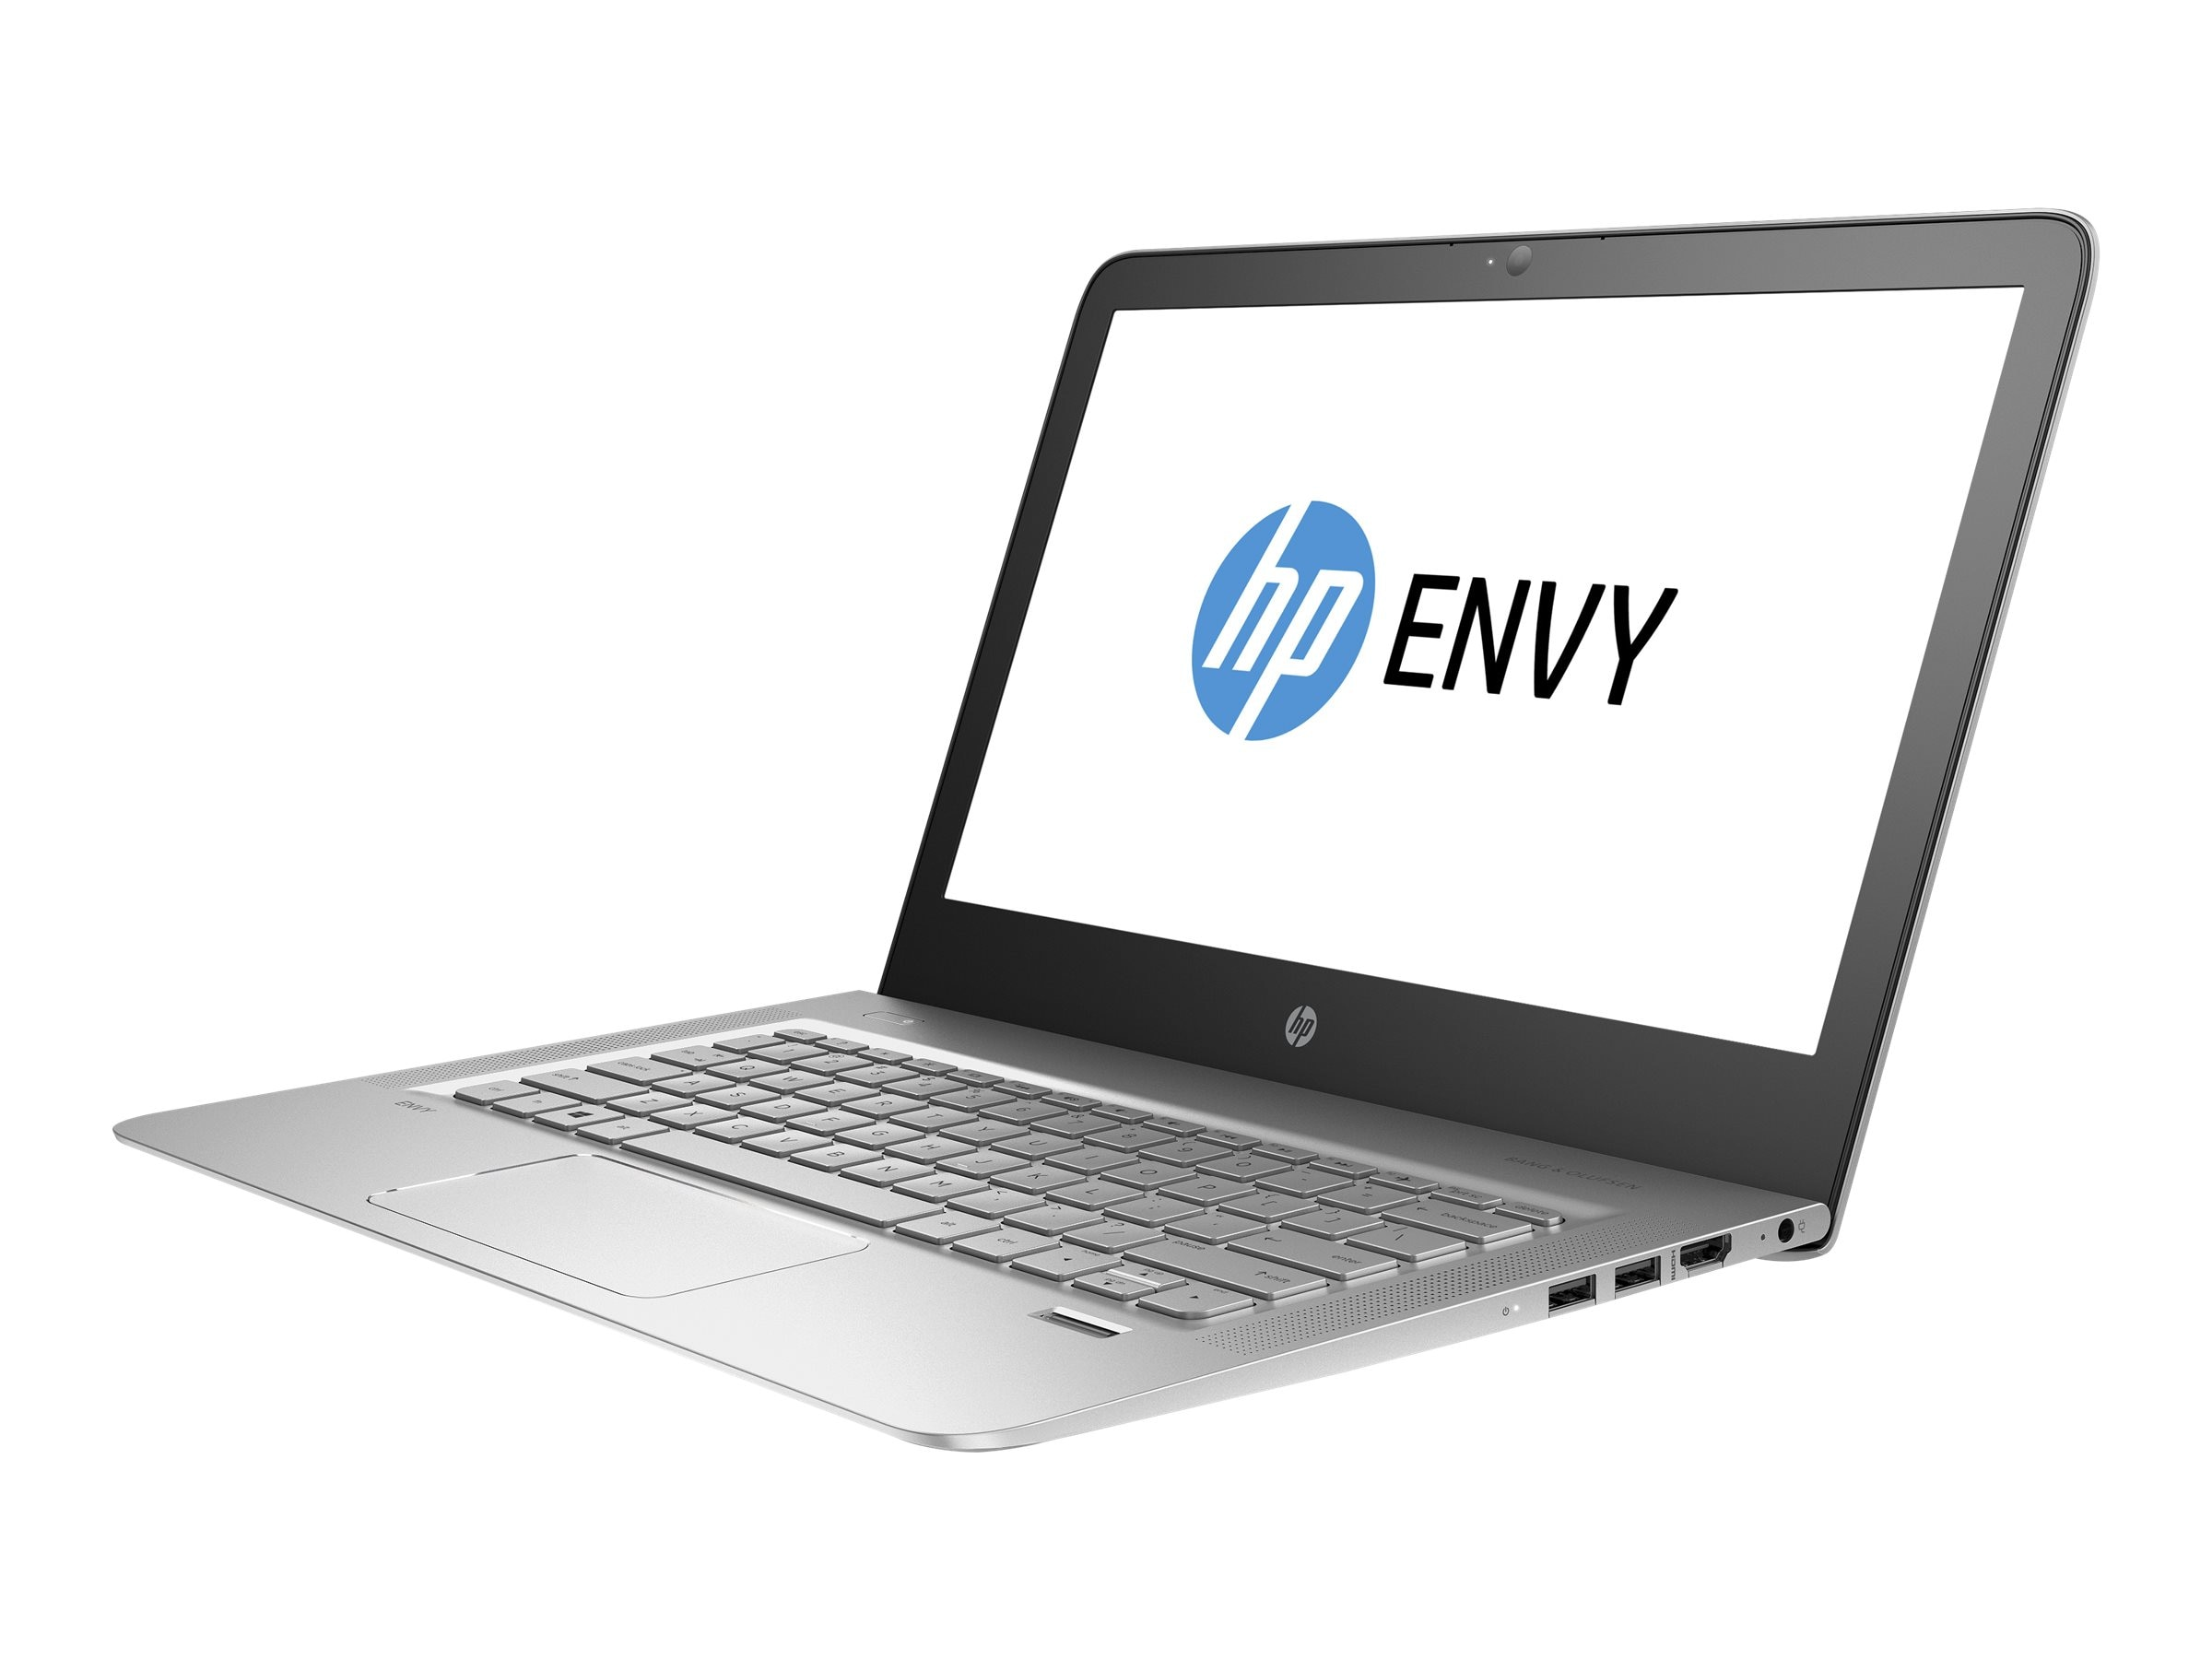 HP Envy 13-D010nr Notebook PC